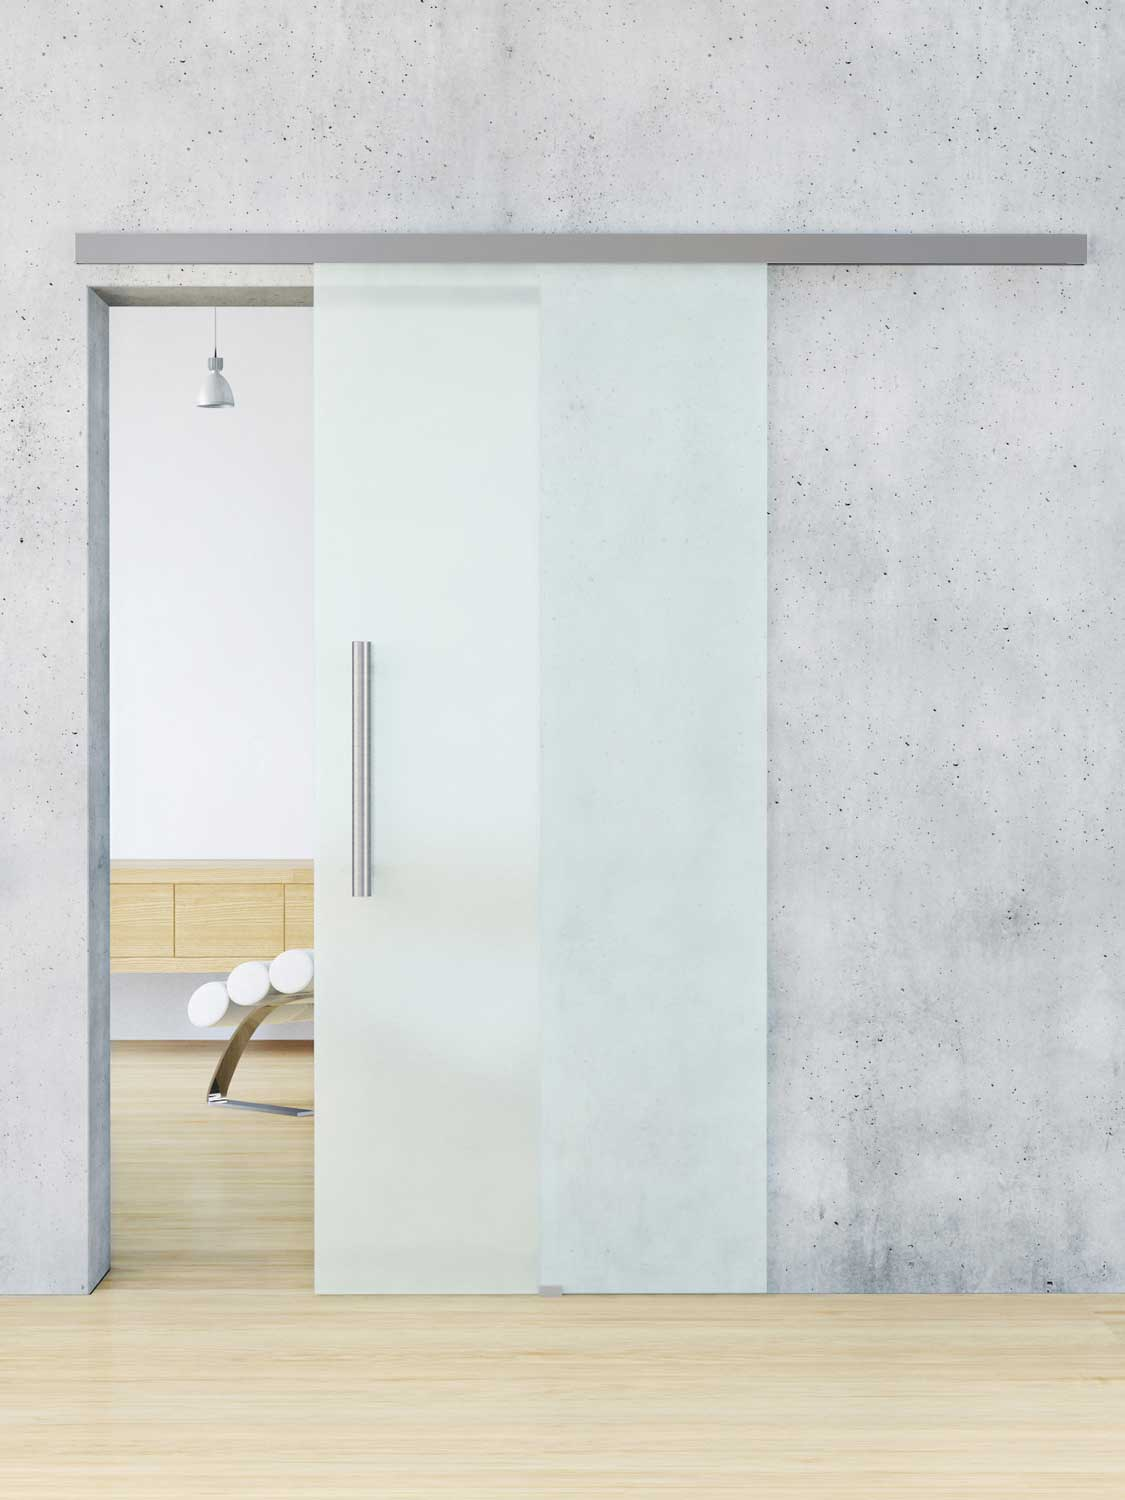 Frosted Glass Interior Doors For Bathrooms Are A Common